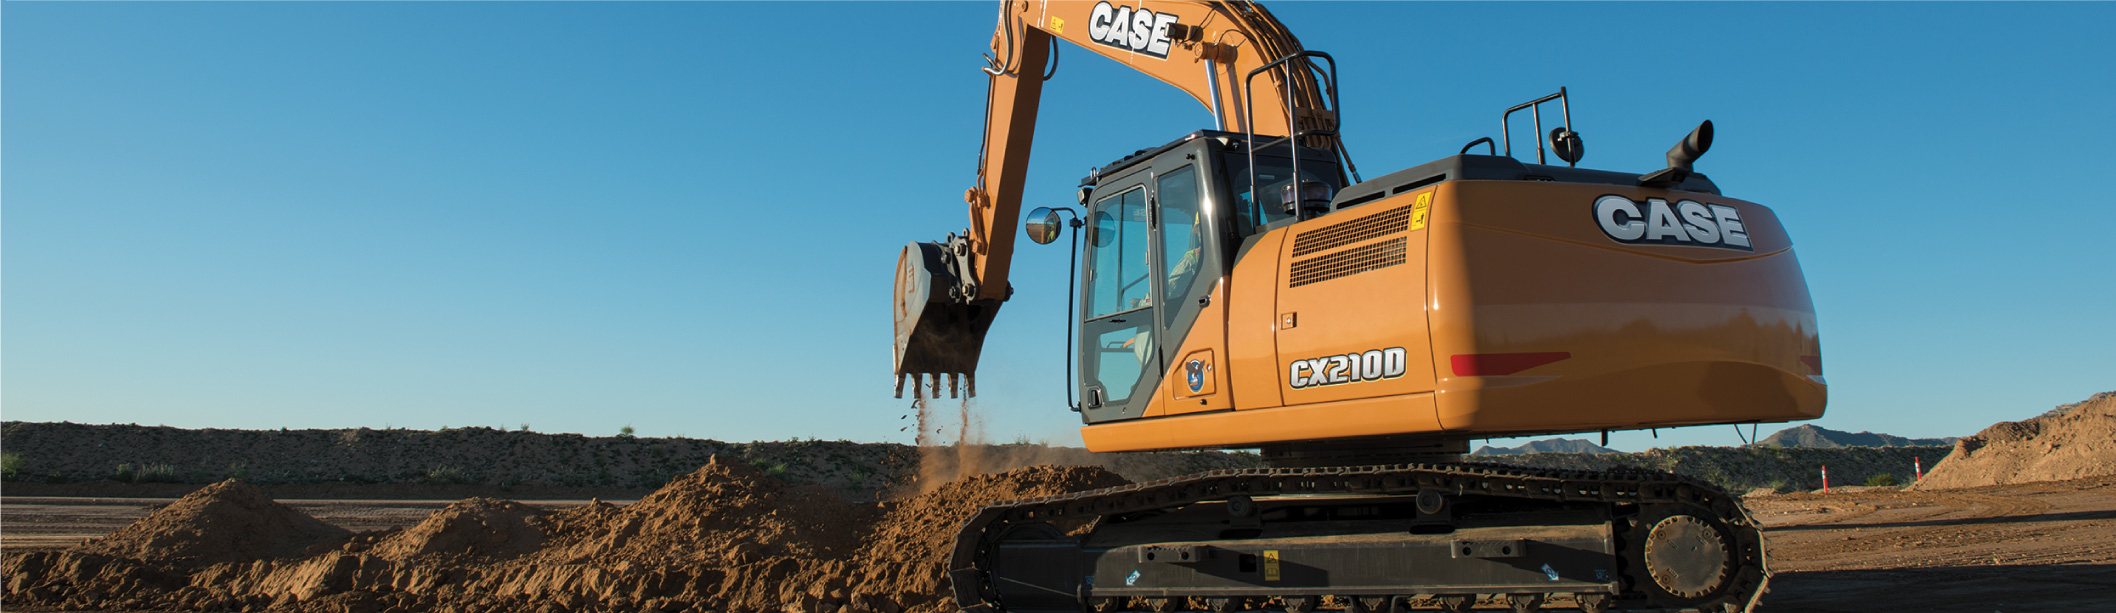 New CASE construction equipment